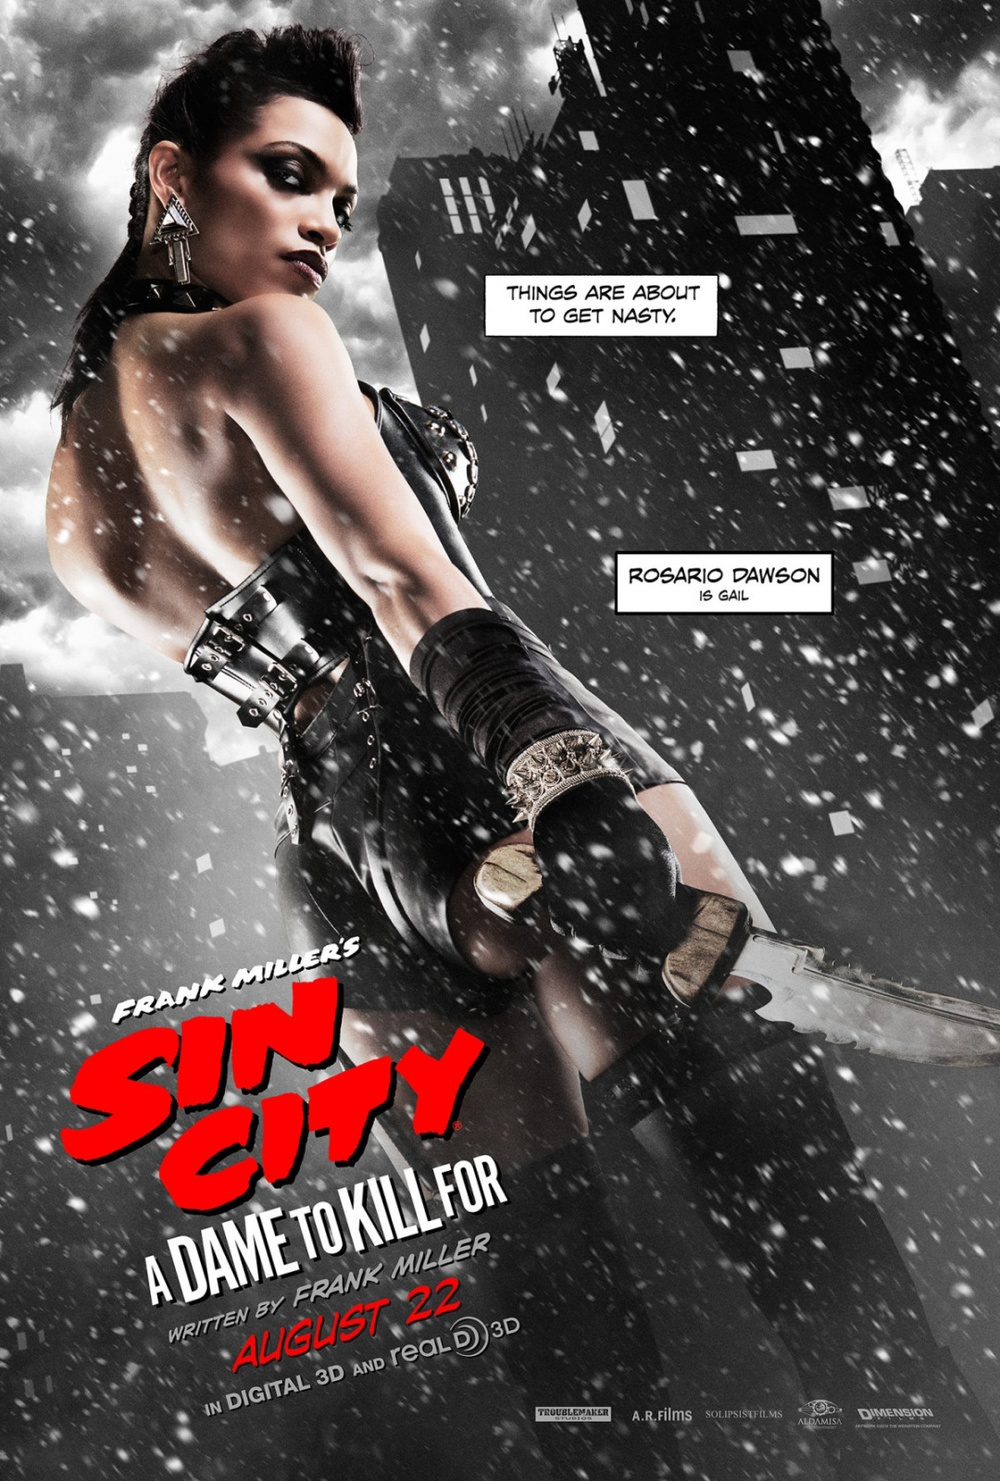 Rosario-Dawson-in-Sin-City-A-Dame-To-Kill-For.jpg